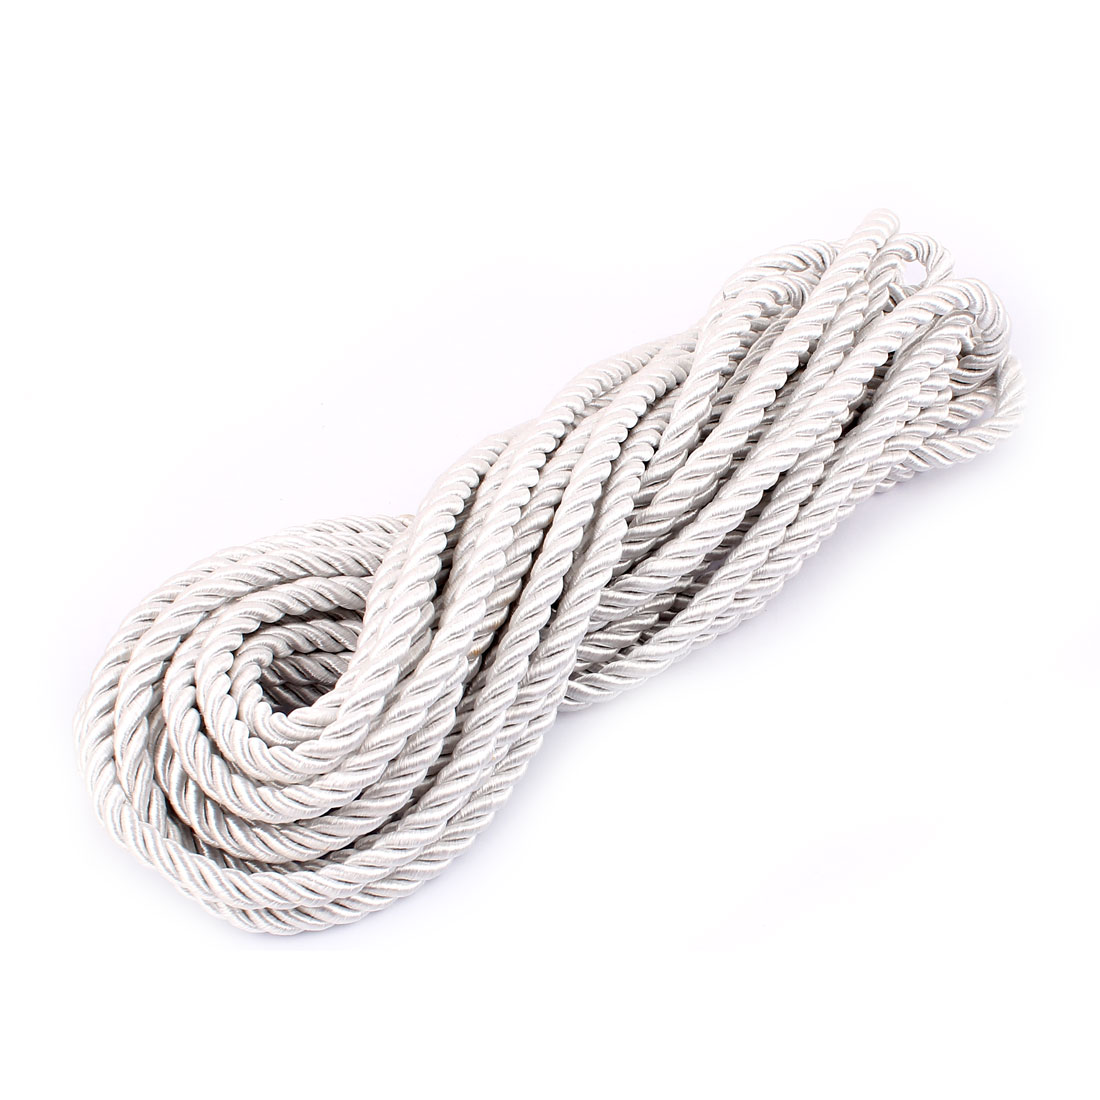 Window Curtain Twisted Braid Trim Rope Cord String 10M 11 Yards Silver Gray